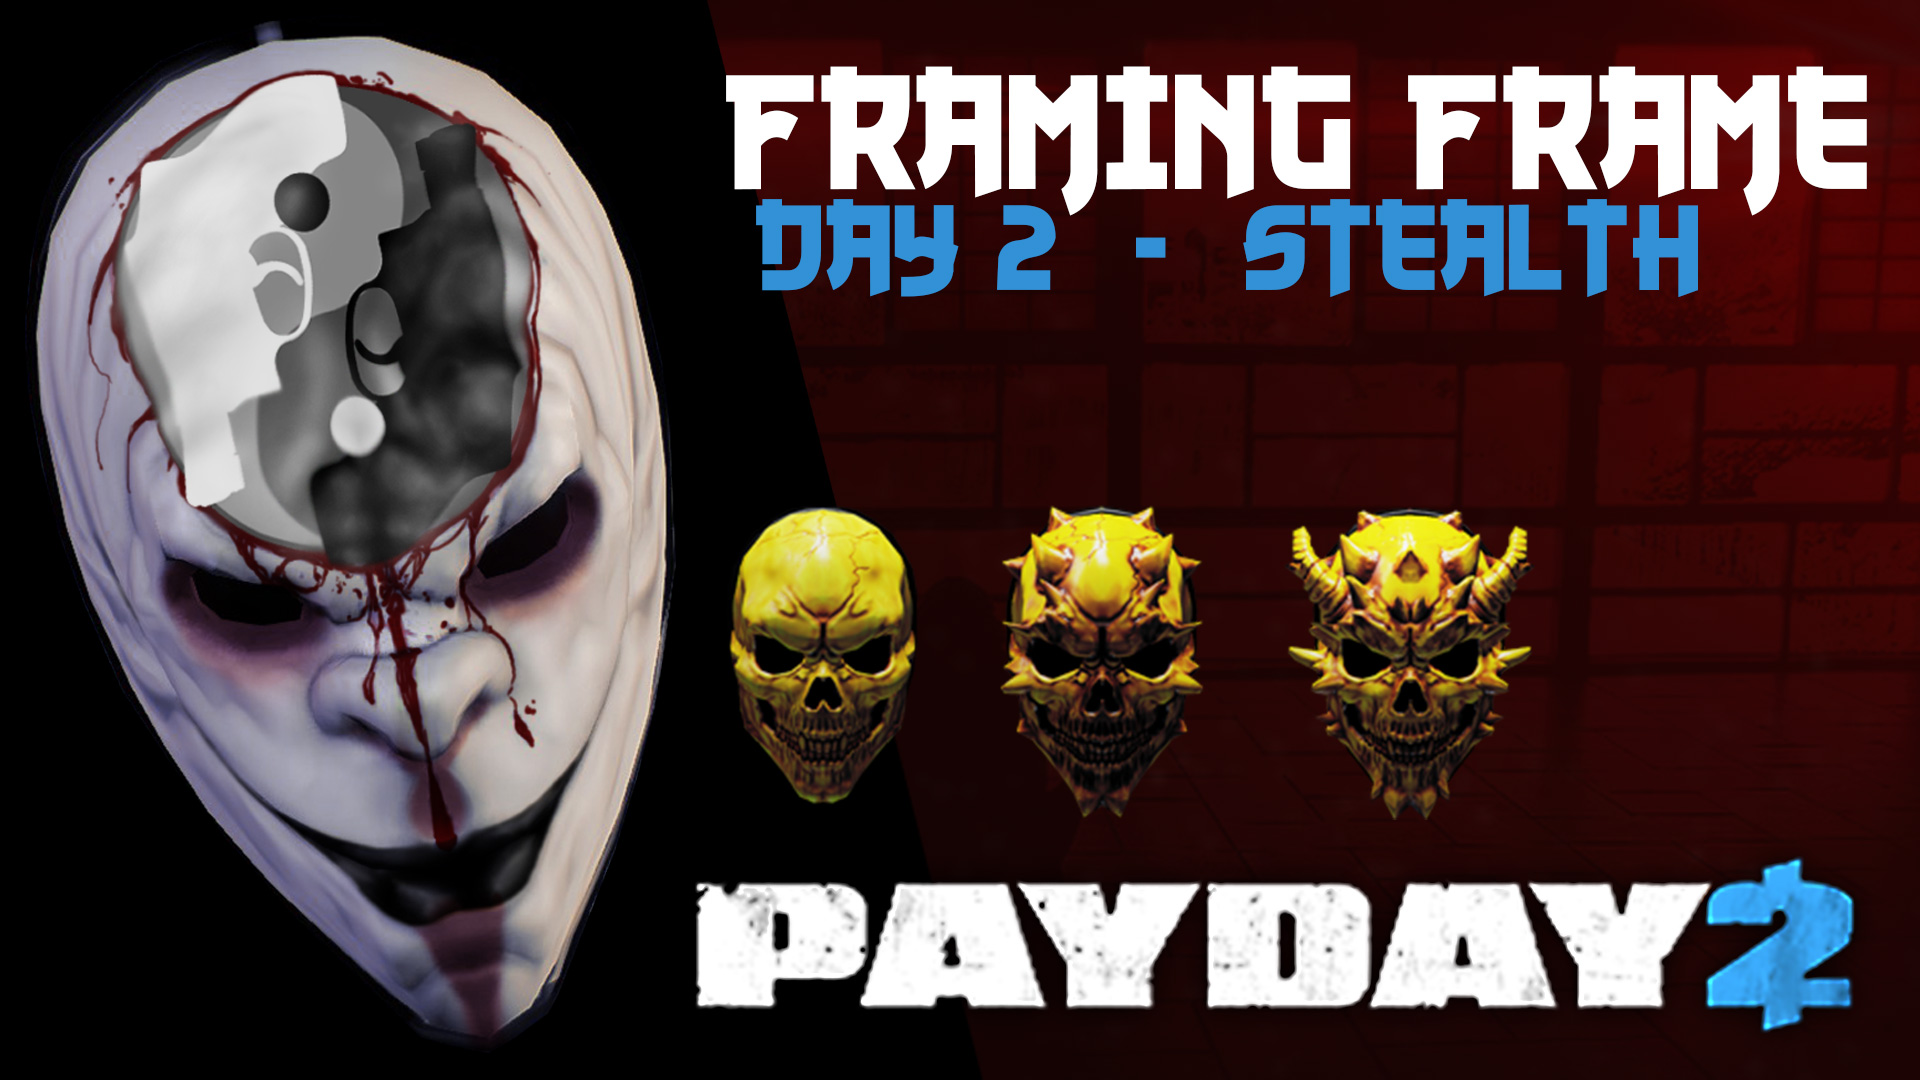 Payday 2: Framing Frame – Day 2 – Stealth Overkill